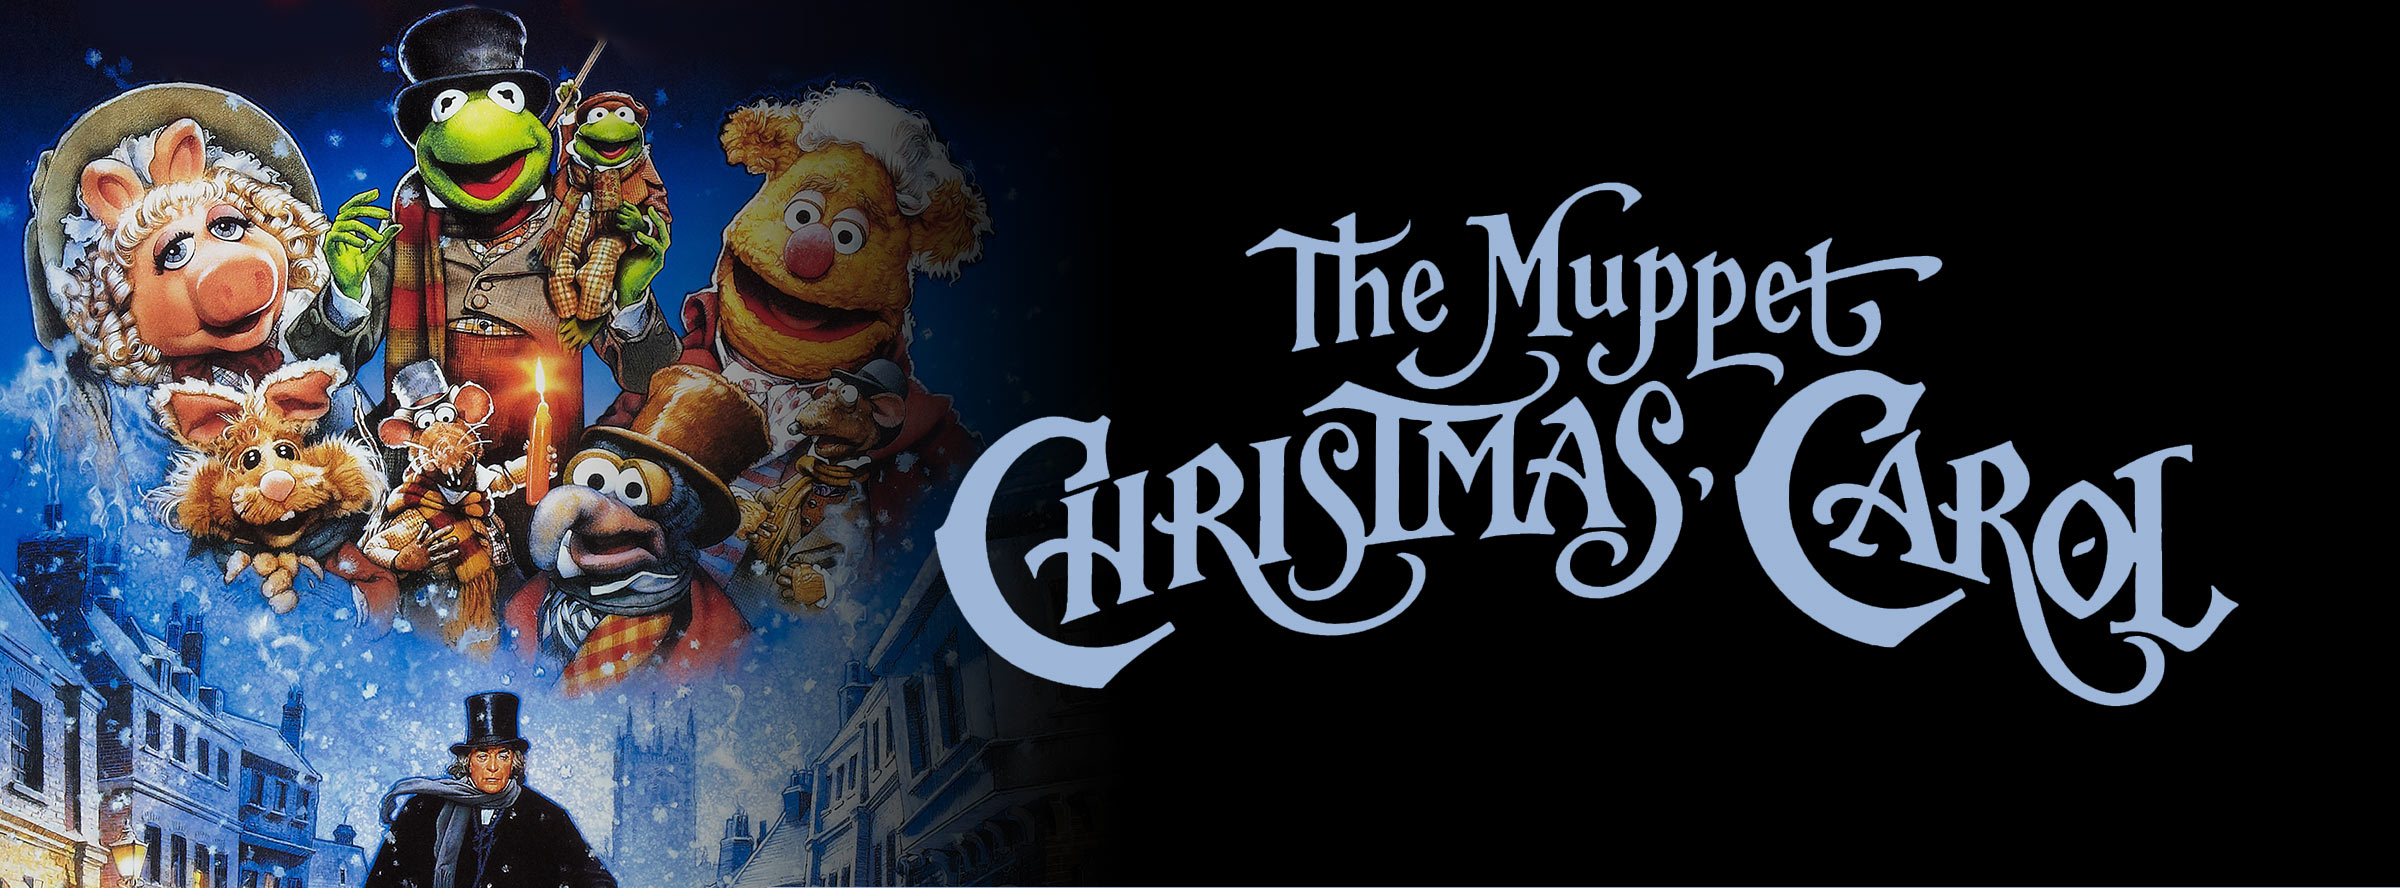 Slider Image for The Muppet Christmas Carol